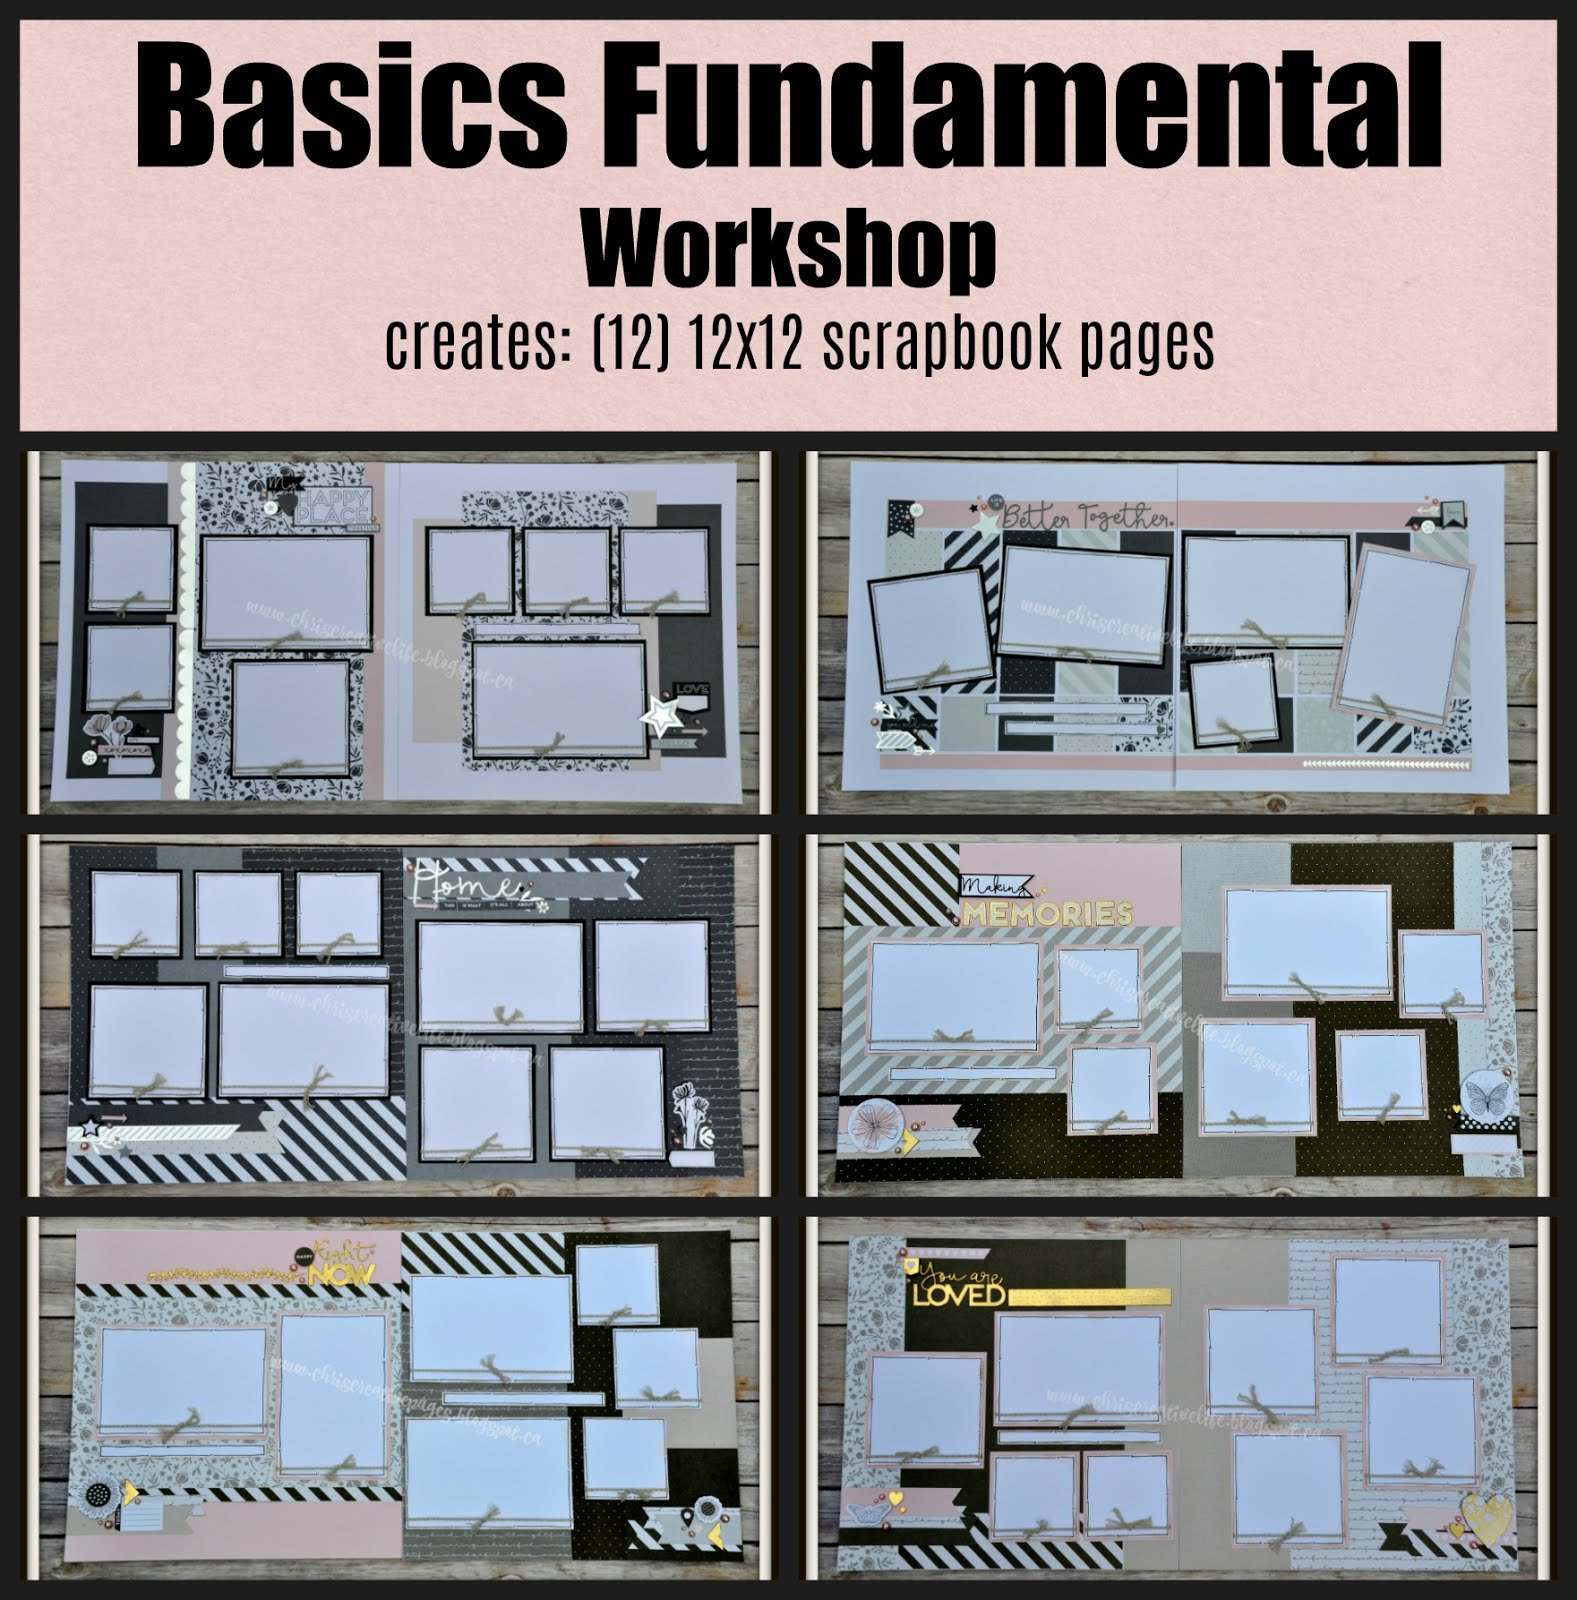 Basics Fundamental Workshop